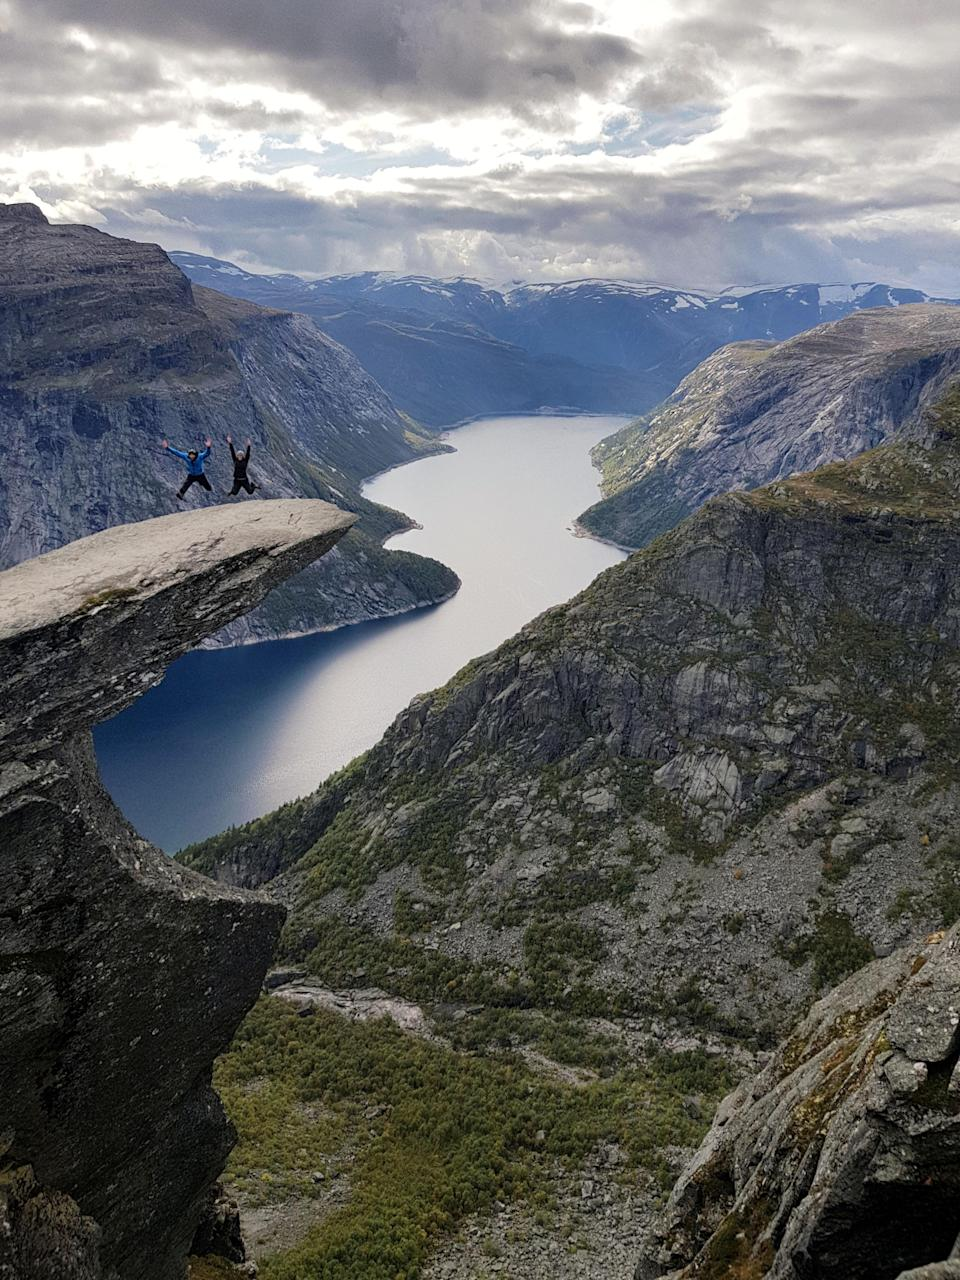 A couple of apparent daredevils on the Troll's Tongue (Trolltunga Adventures/Caters News)